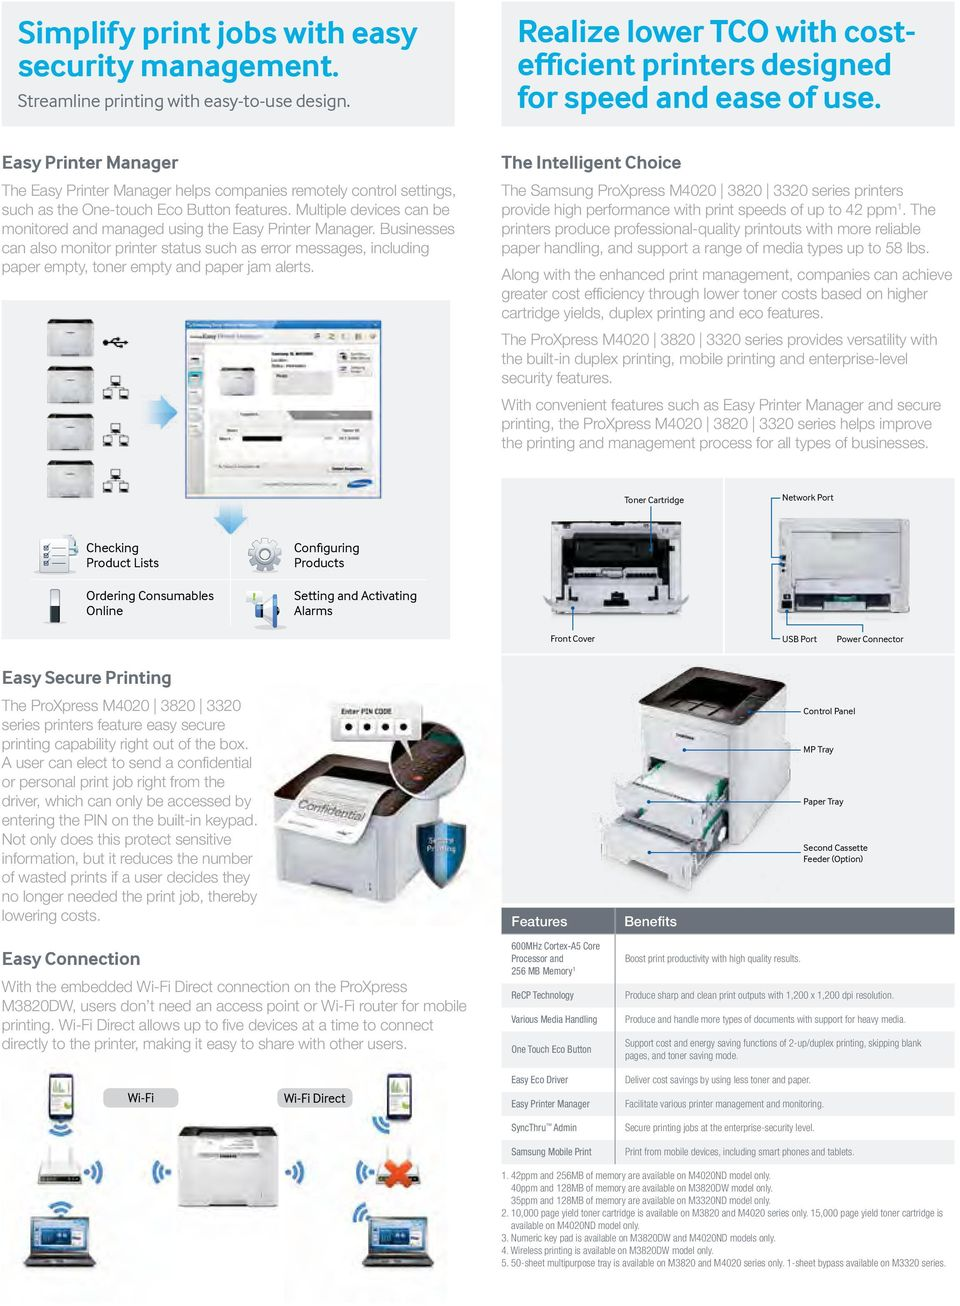 Multiple devices can be monitored and managed using the Easy Printer Manager.